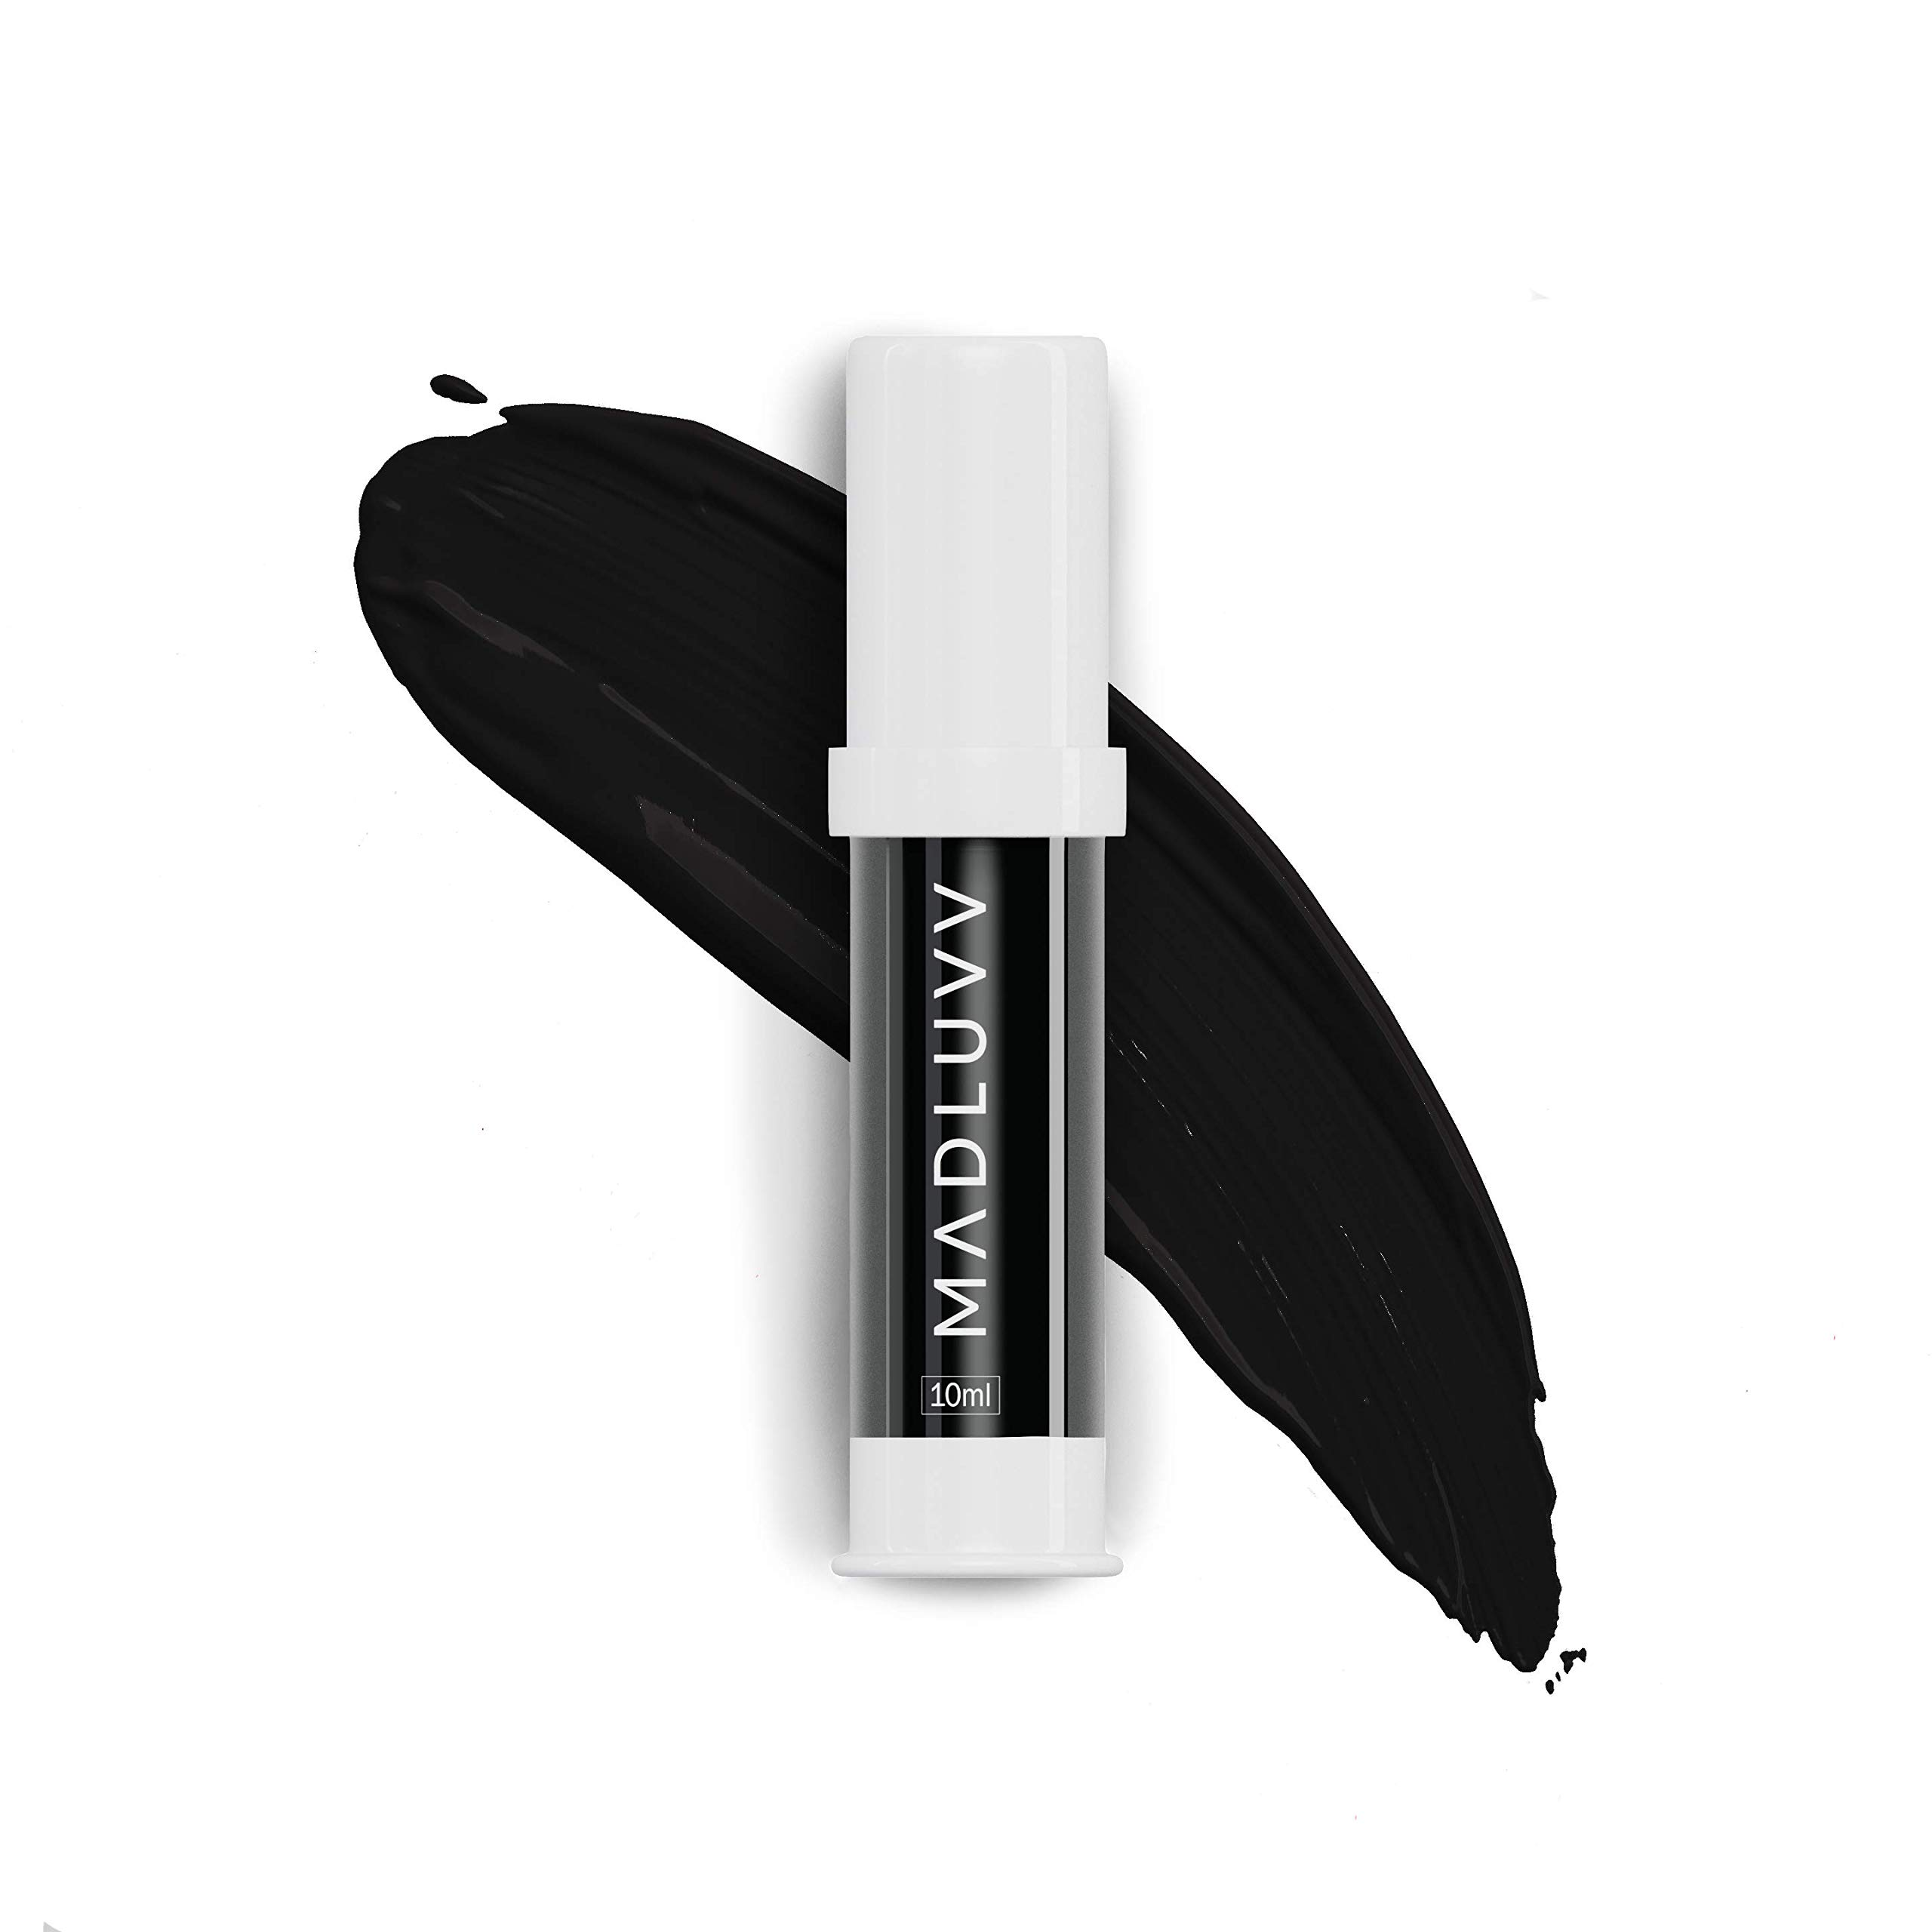 Madluvv Jet Black 115 - Best Microblading Pigment for Perfect Brows, Microblading Pen Supplies, Professional Medical-Grade Tattoo Ink, Works with Permanent Makeup Machine, 10 ml Bottle